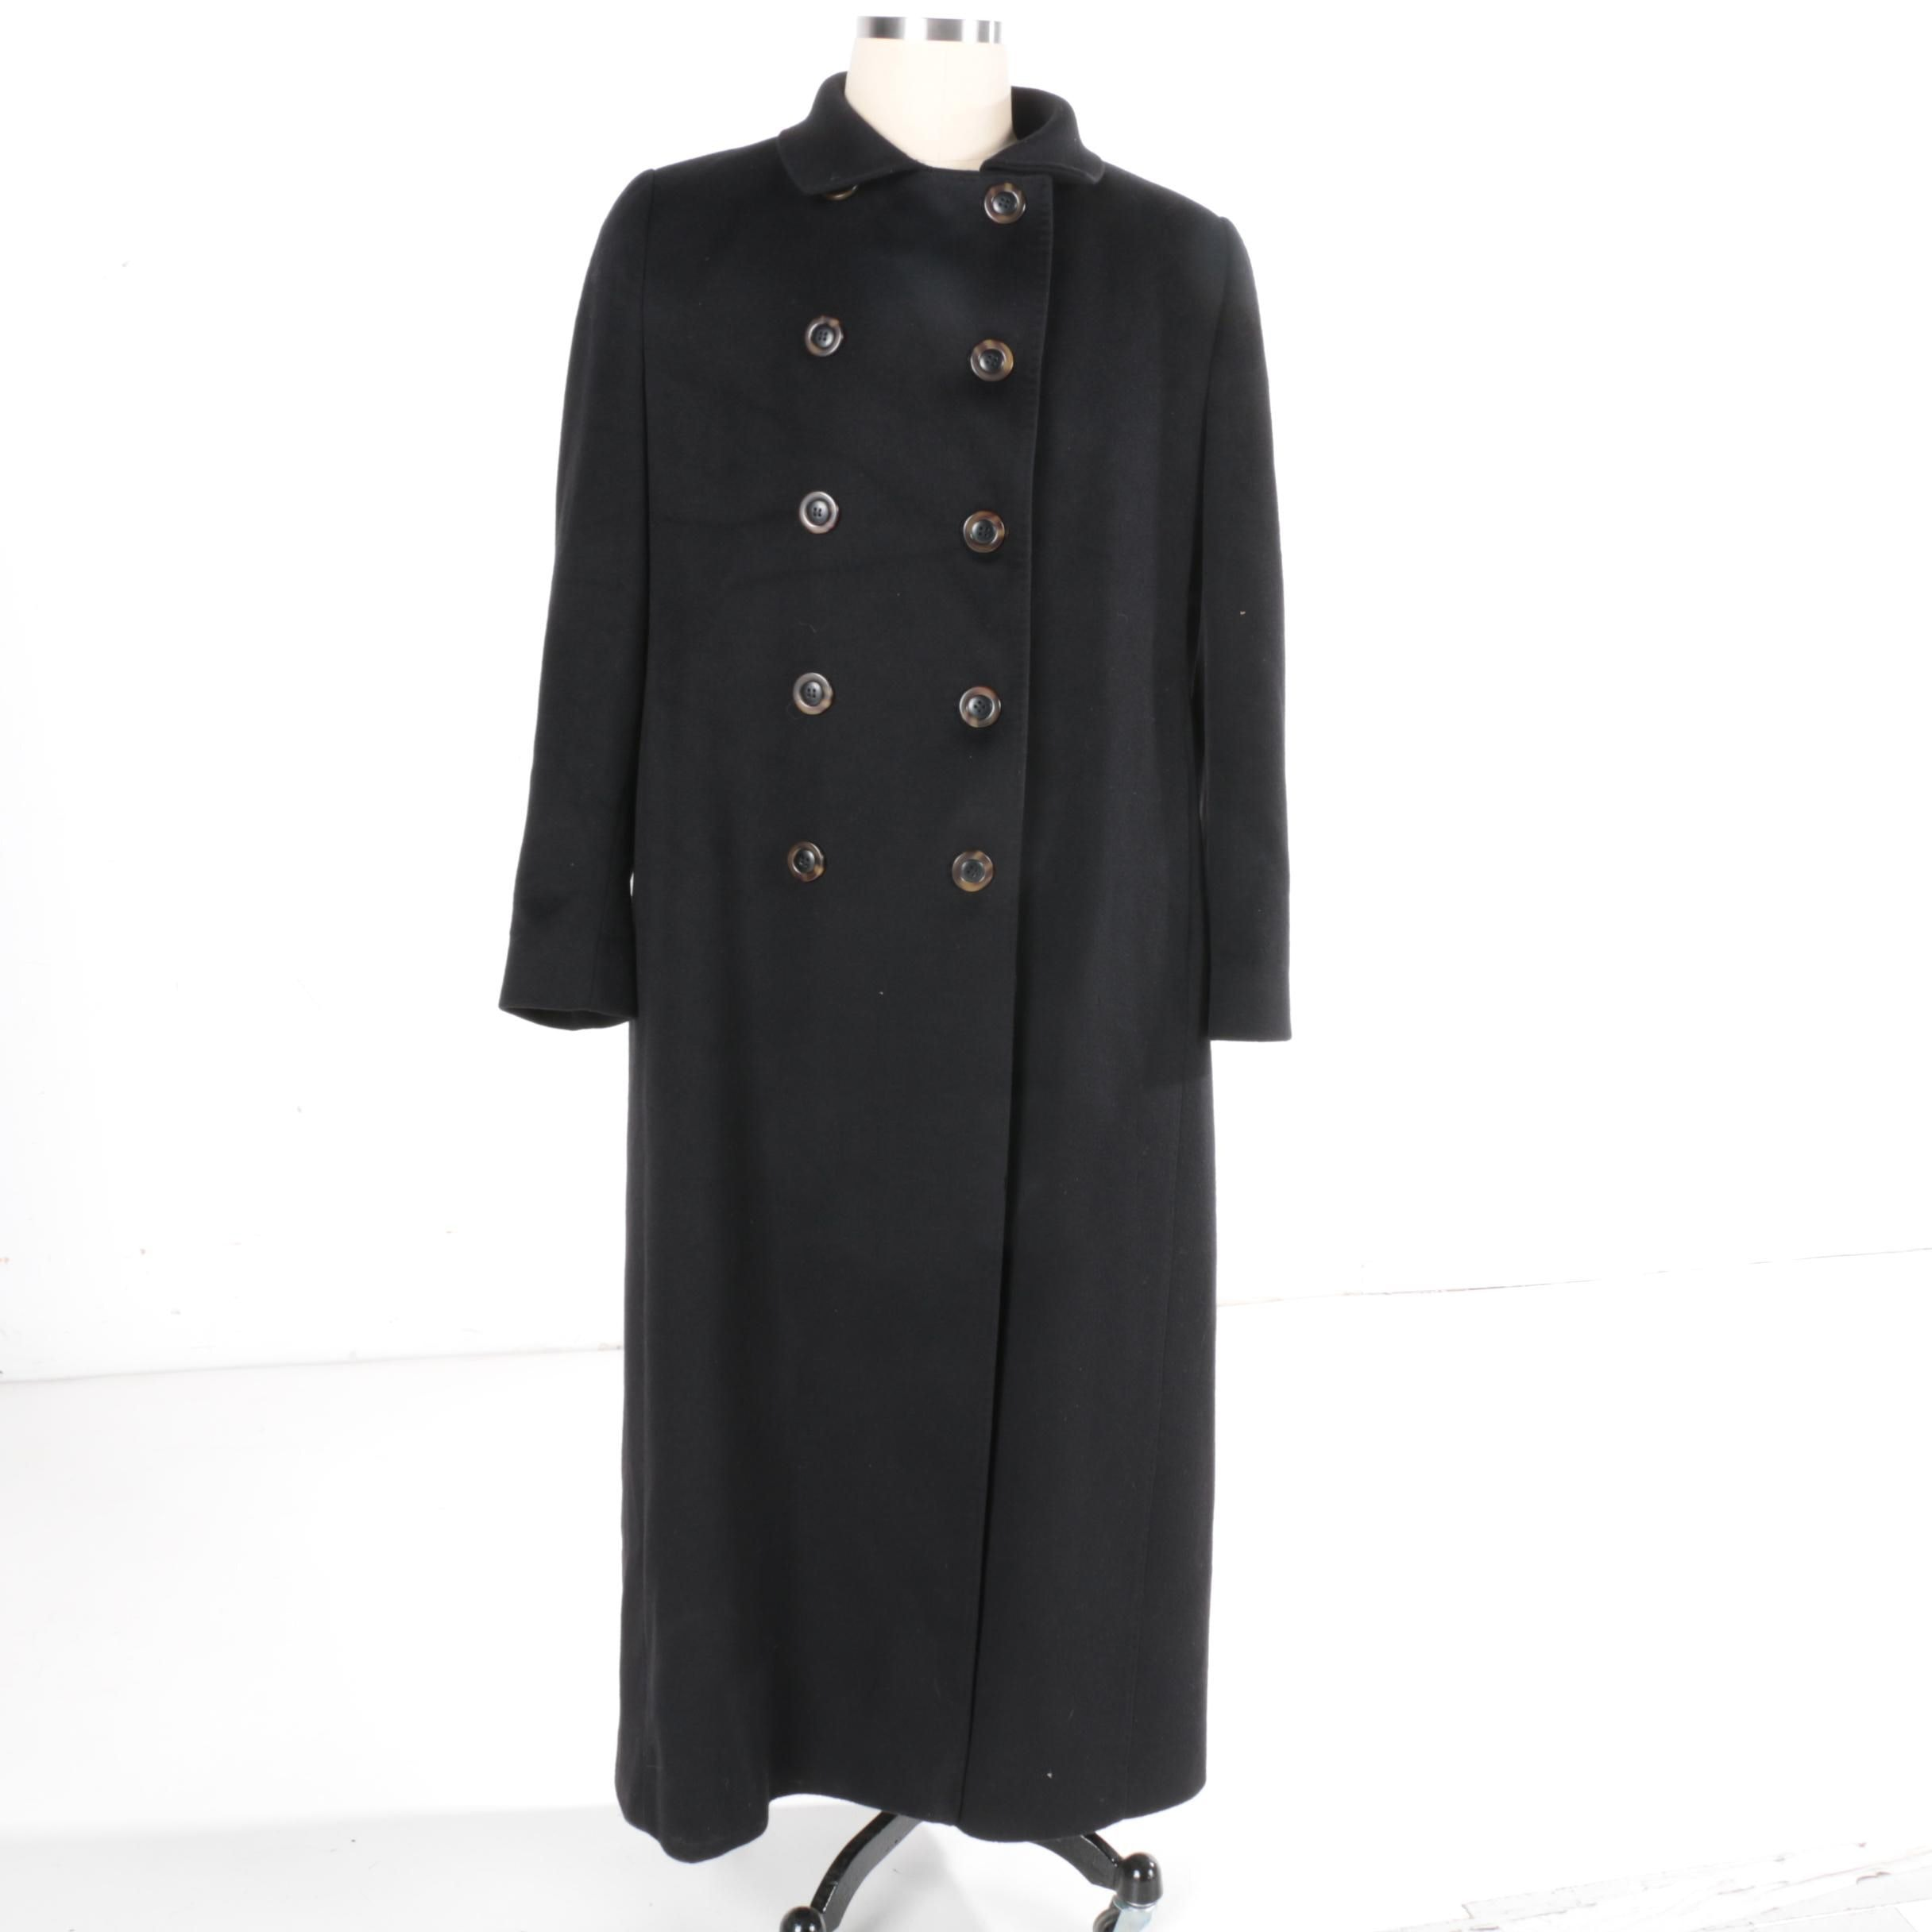 Fleurette Saks Fifth Avenue Cashmere Collection Coat